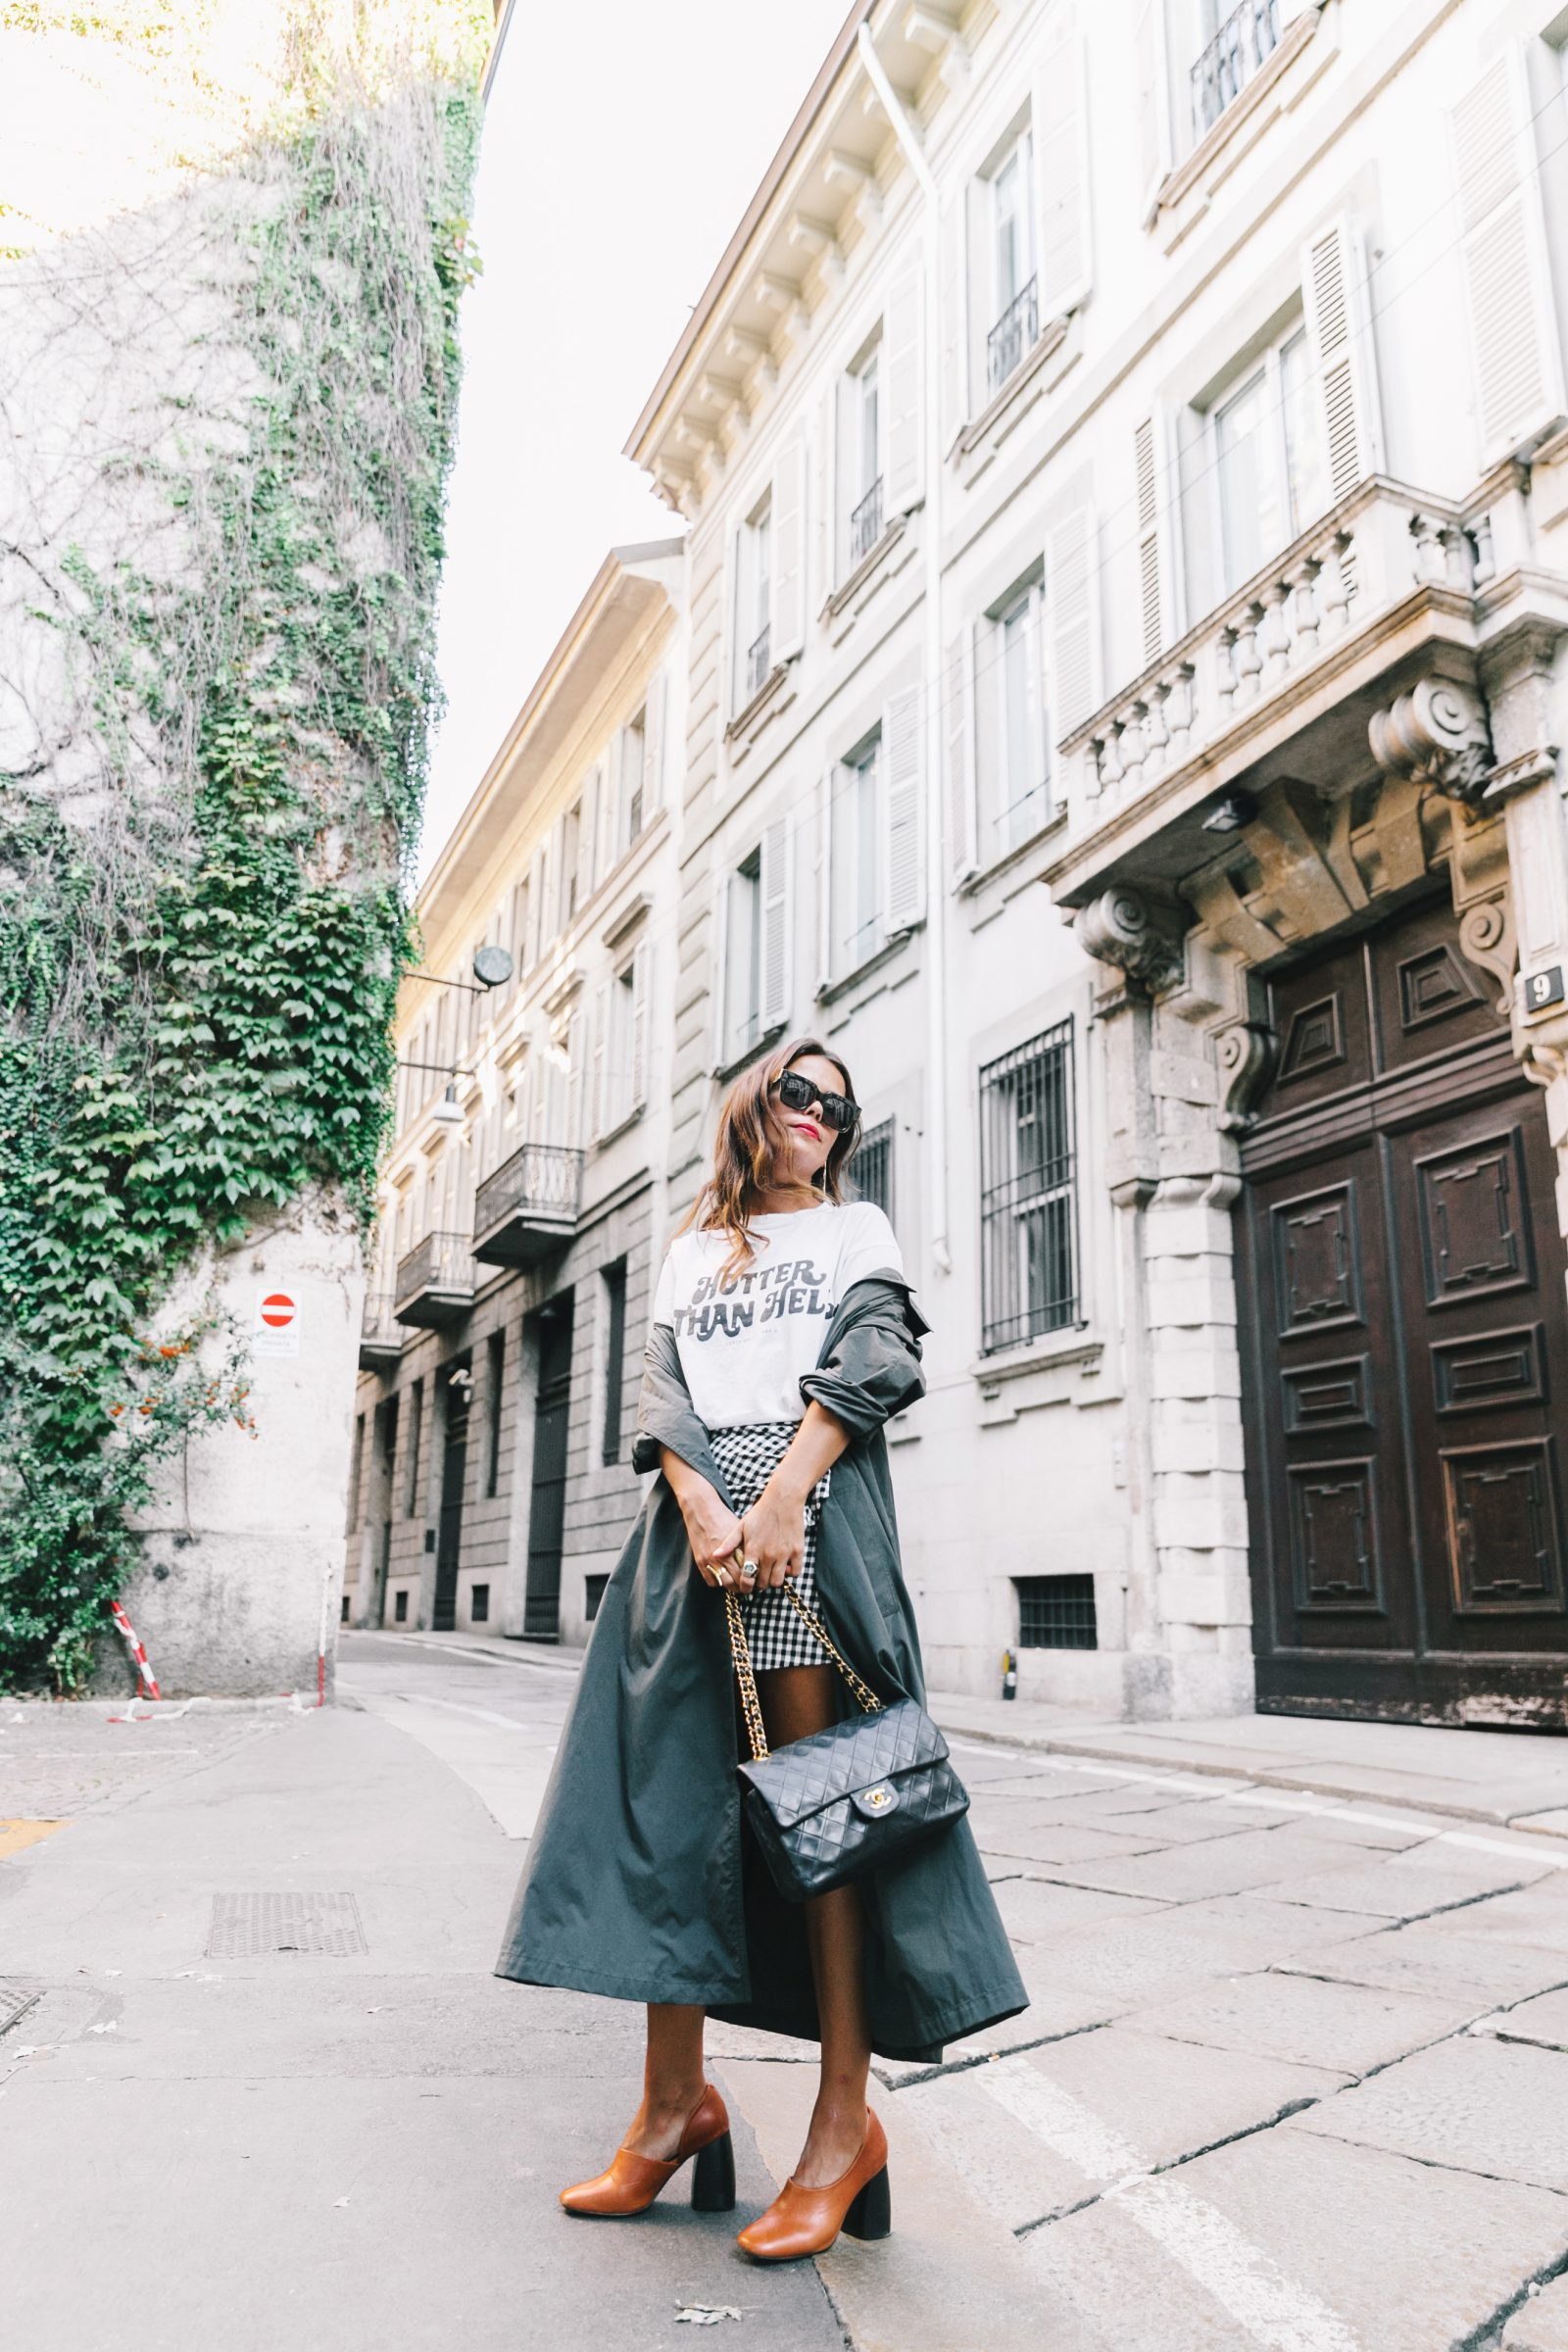 mfw-milan_fashion_week_ss17-street_style-outfits-collage_vintage-bottega_veneta-bluemarine-jil_sander-17